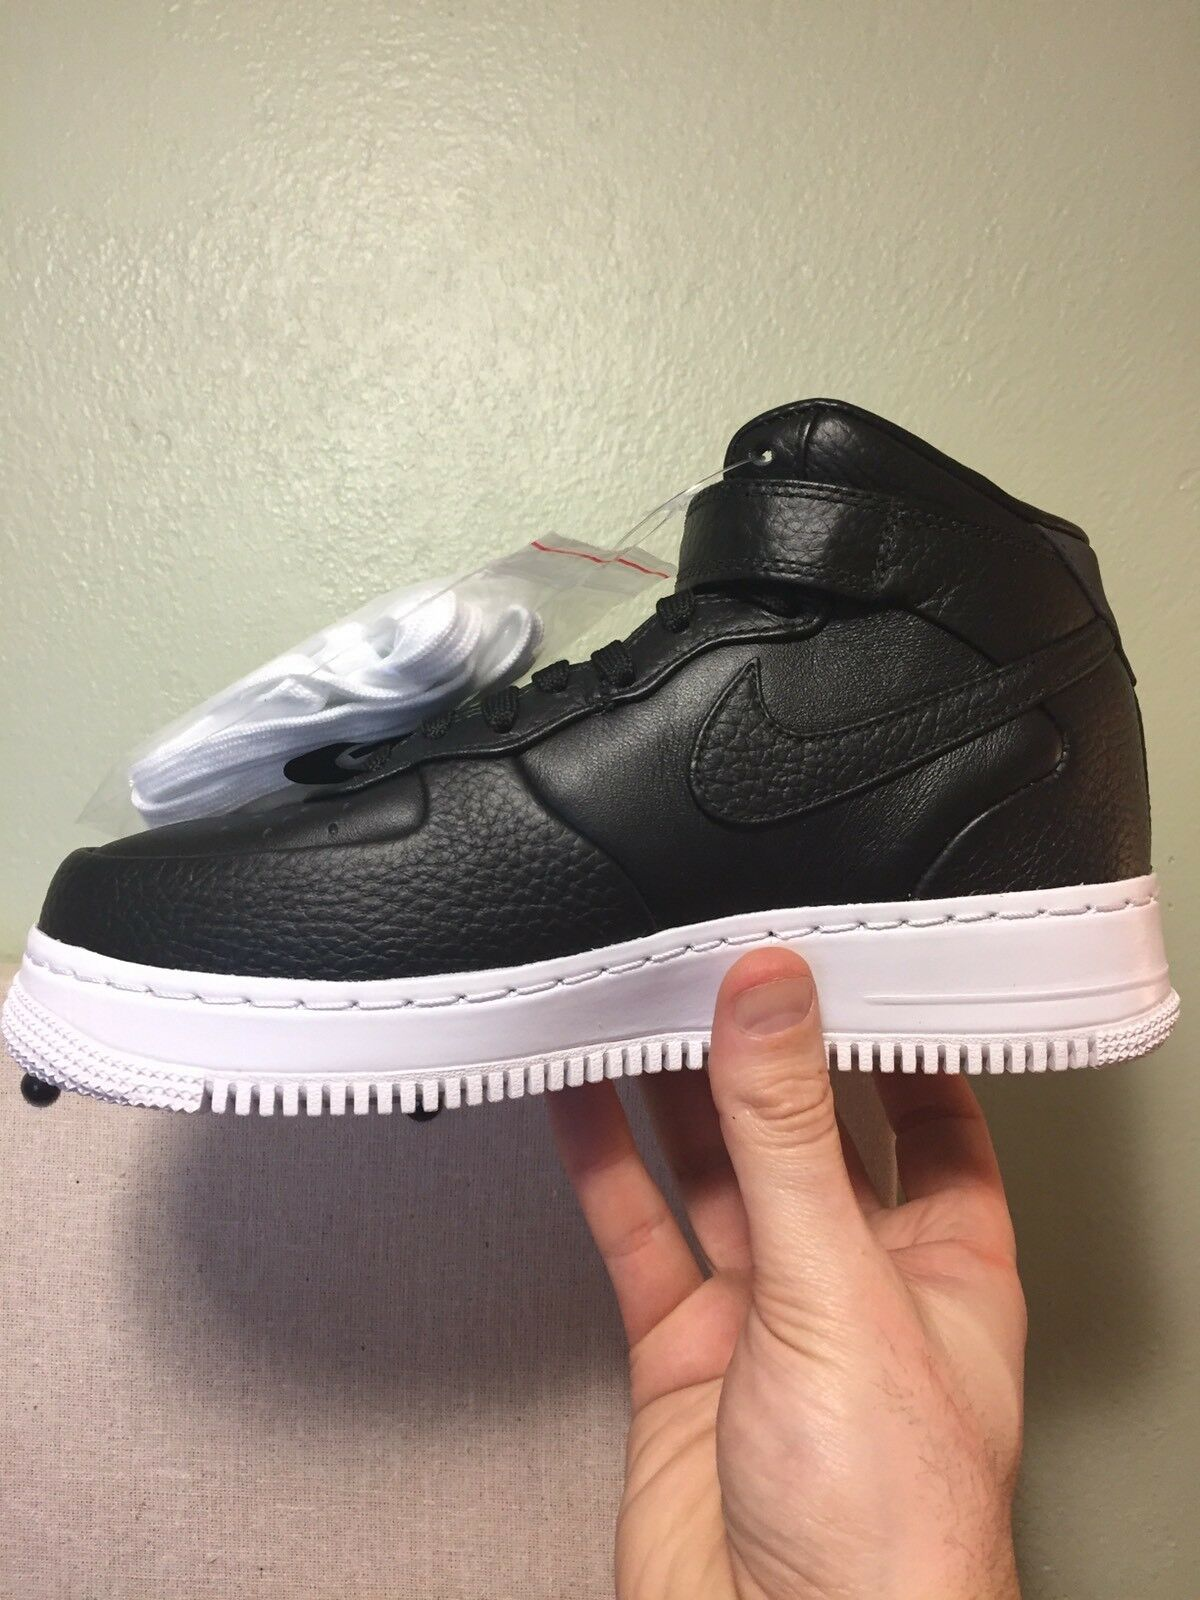 Mens Nike NikeLab Air Force 1 Mid Comfortable The most popular shoes for men and women